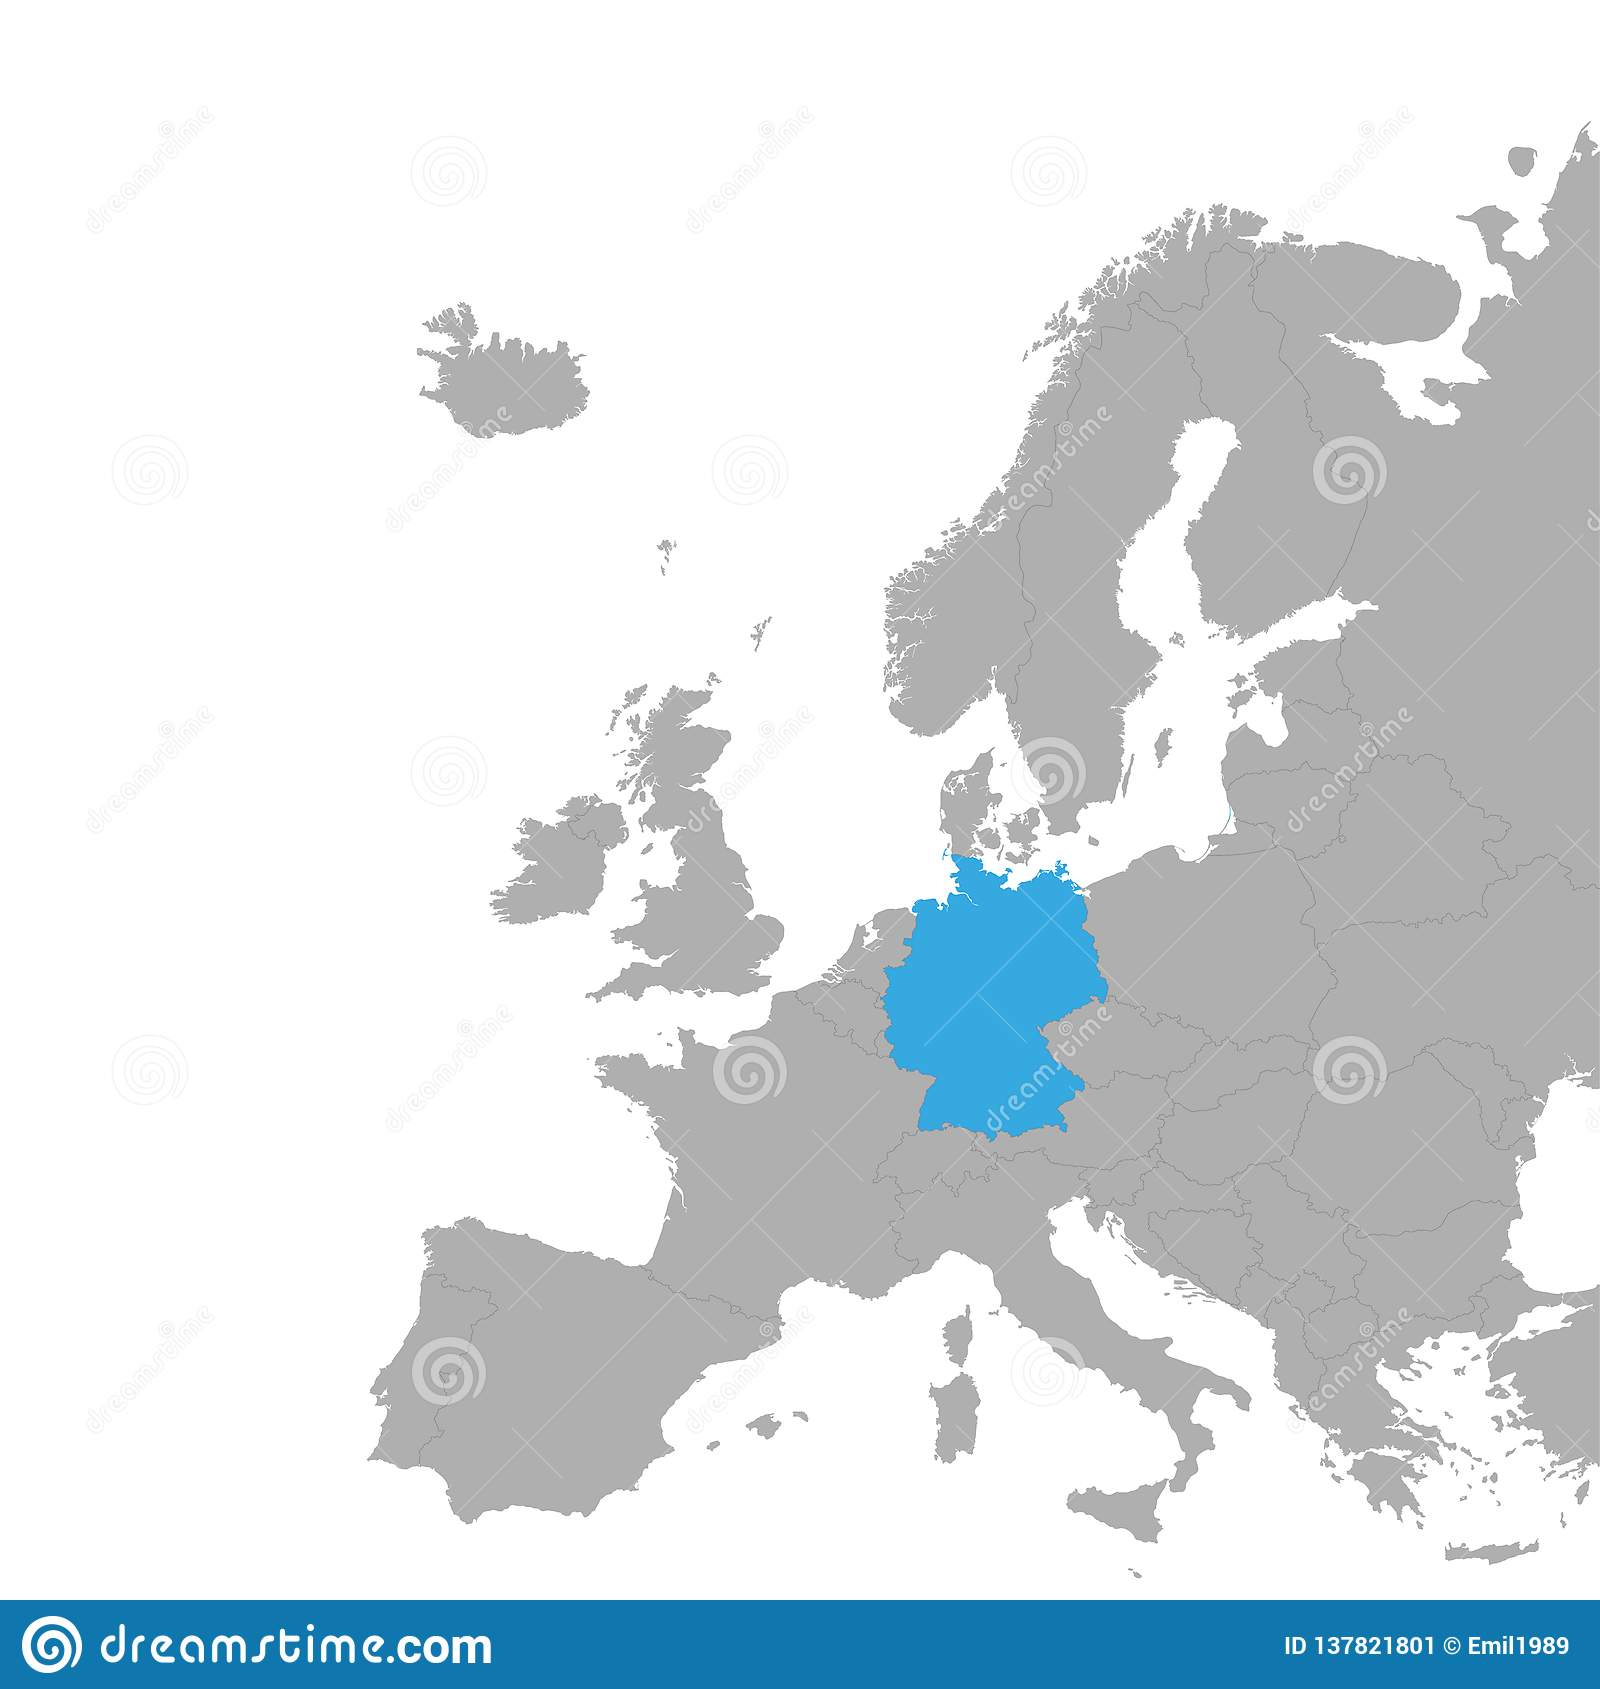 Map Of Europe With Germany Highlighted.The Map Of Germany Is Highlighted In Blue On The Map Of Europe Stock